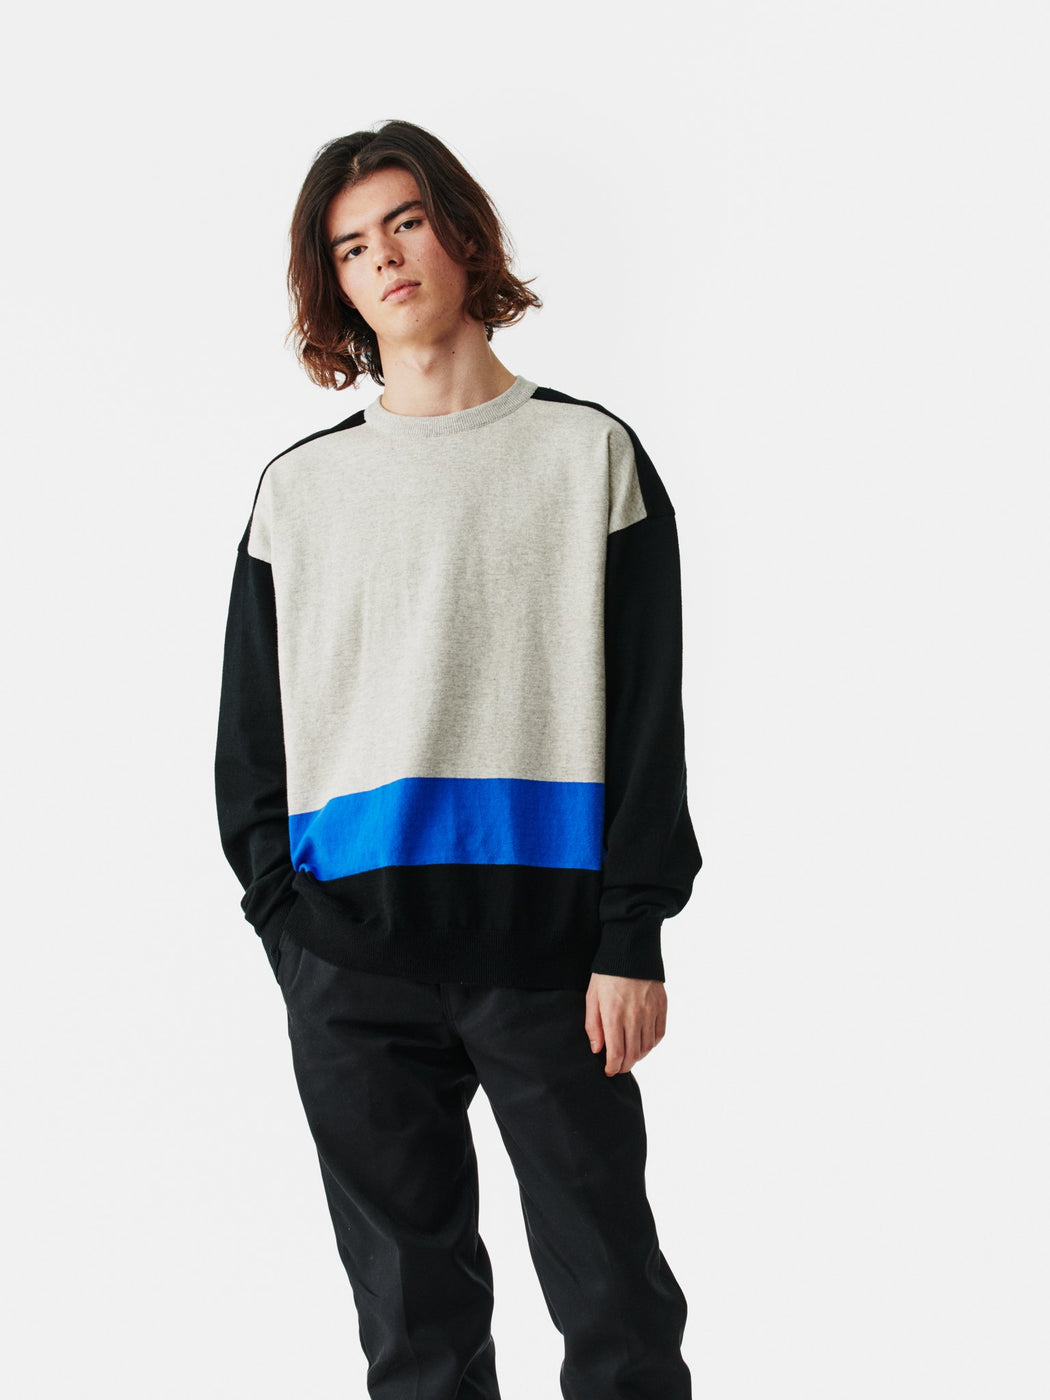 ALOYE G.F.G.S. Cotton Knitted Sweater Black-Heather Gray-Blue